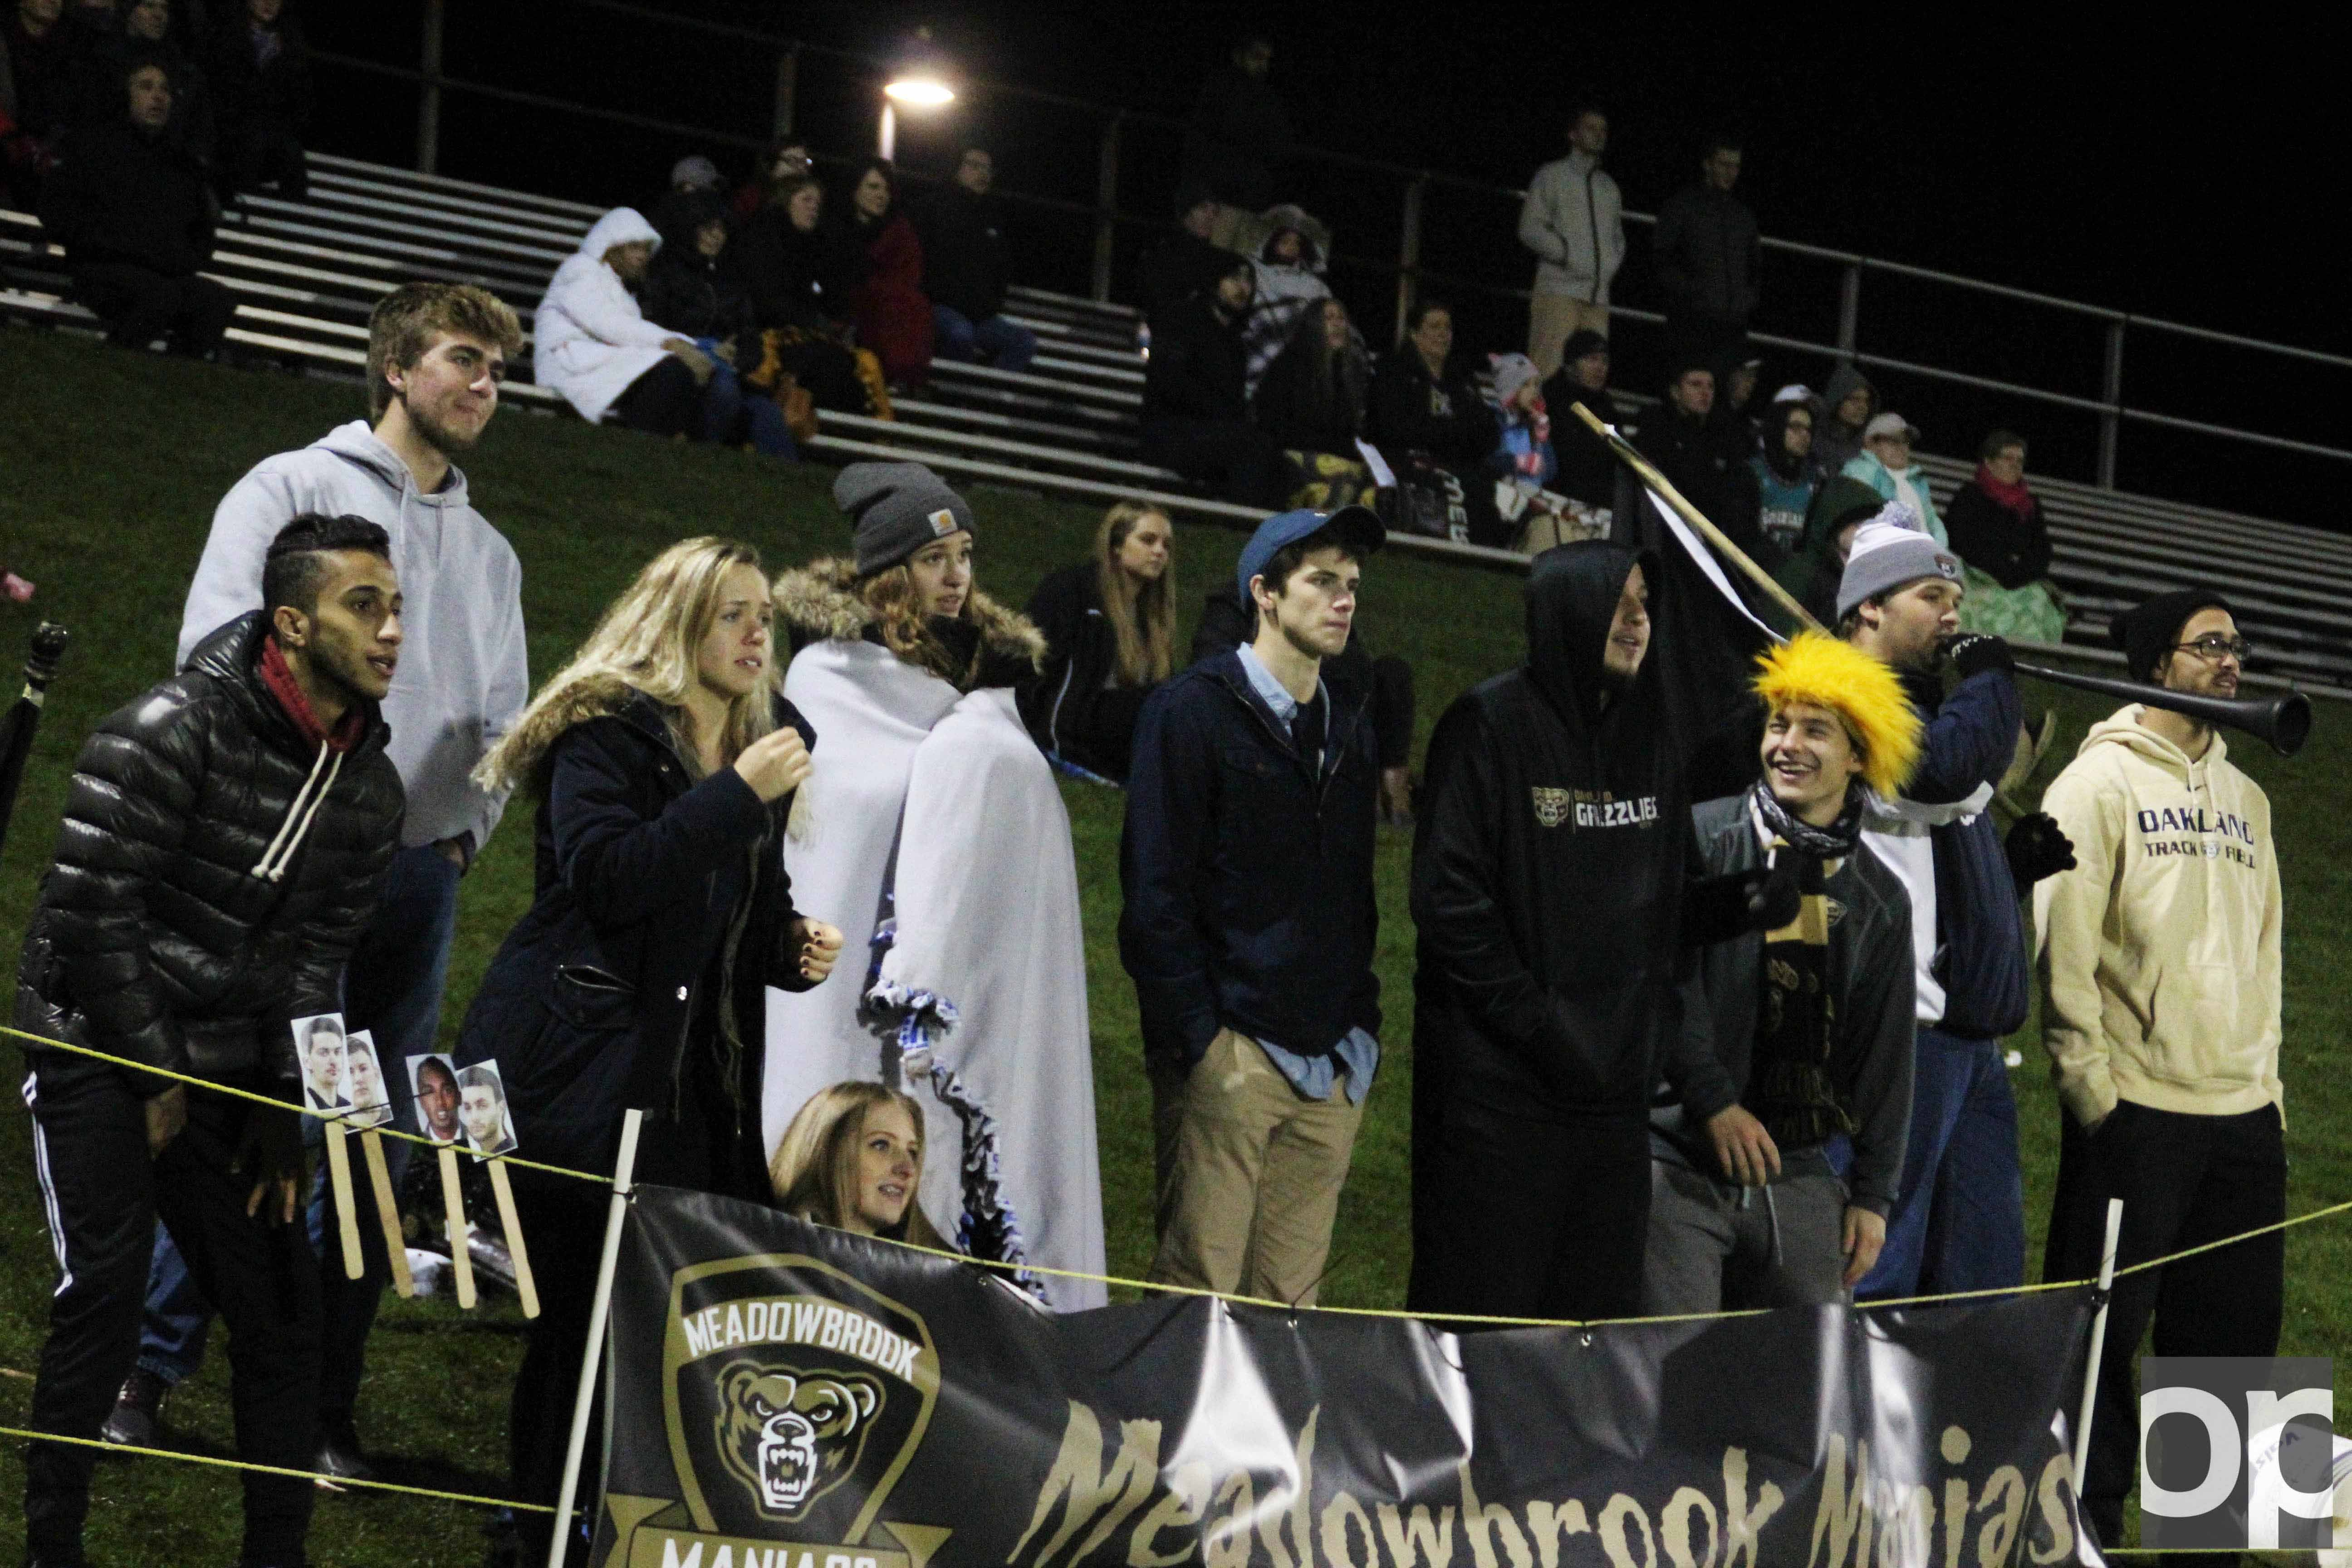 The Meadowbrook Maniacs support both the men's and women's soccer teams through chants during the games.